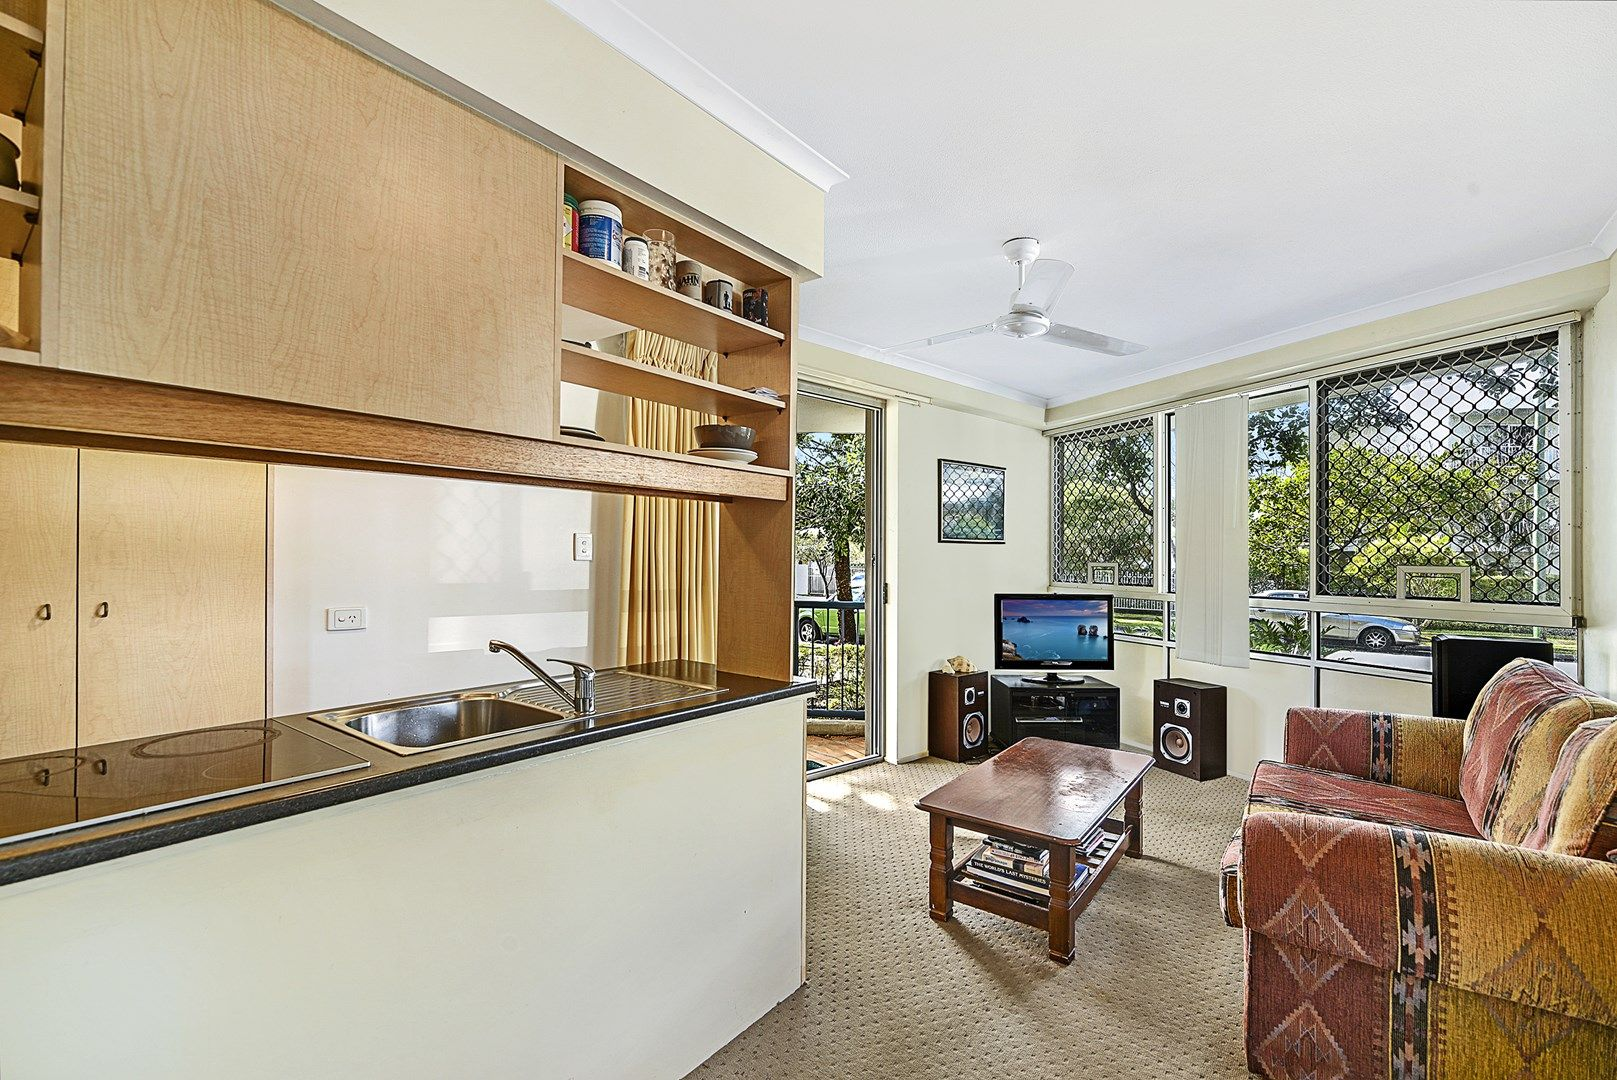 5/100 Petrel Ave, Mermaid Beach QLD 4218, Image 0